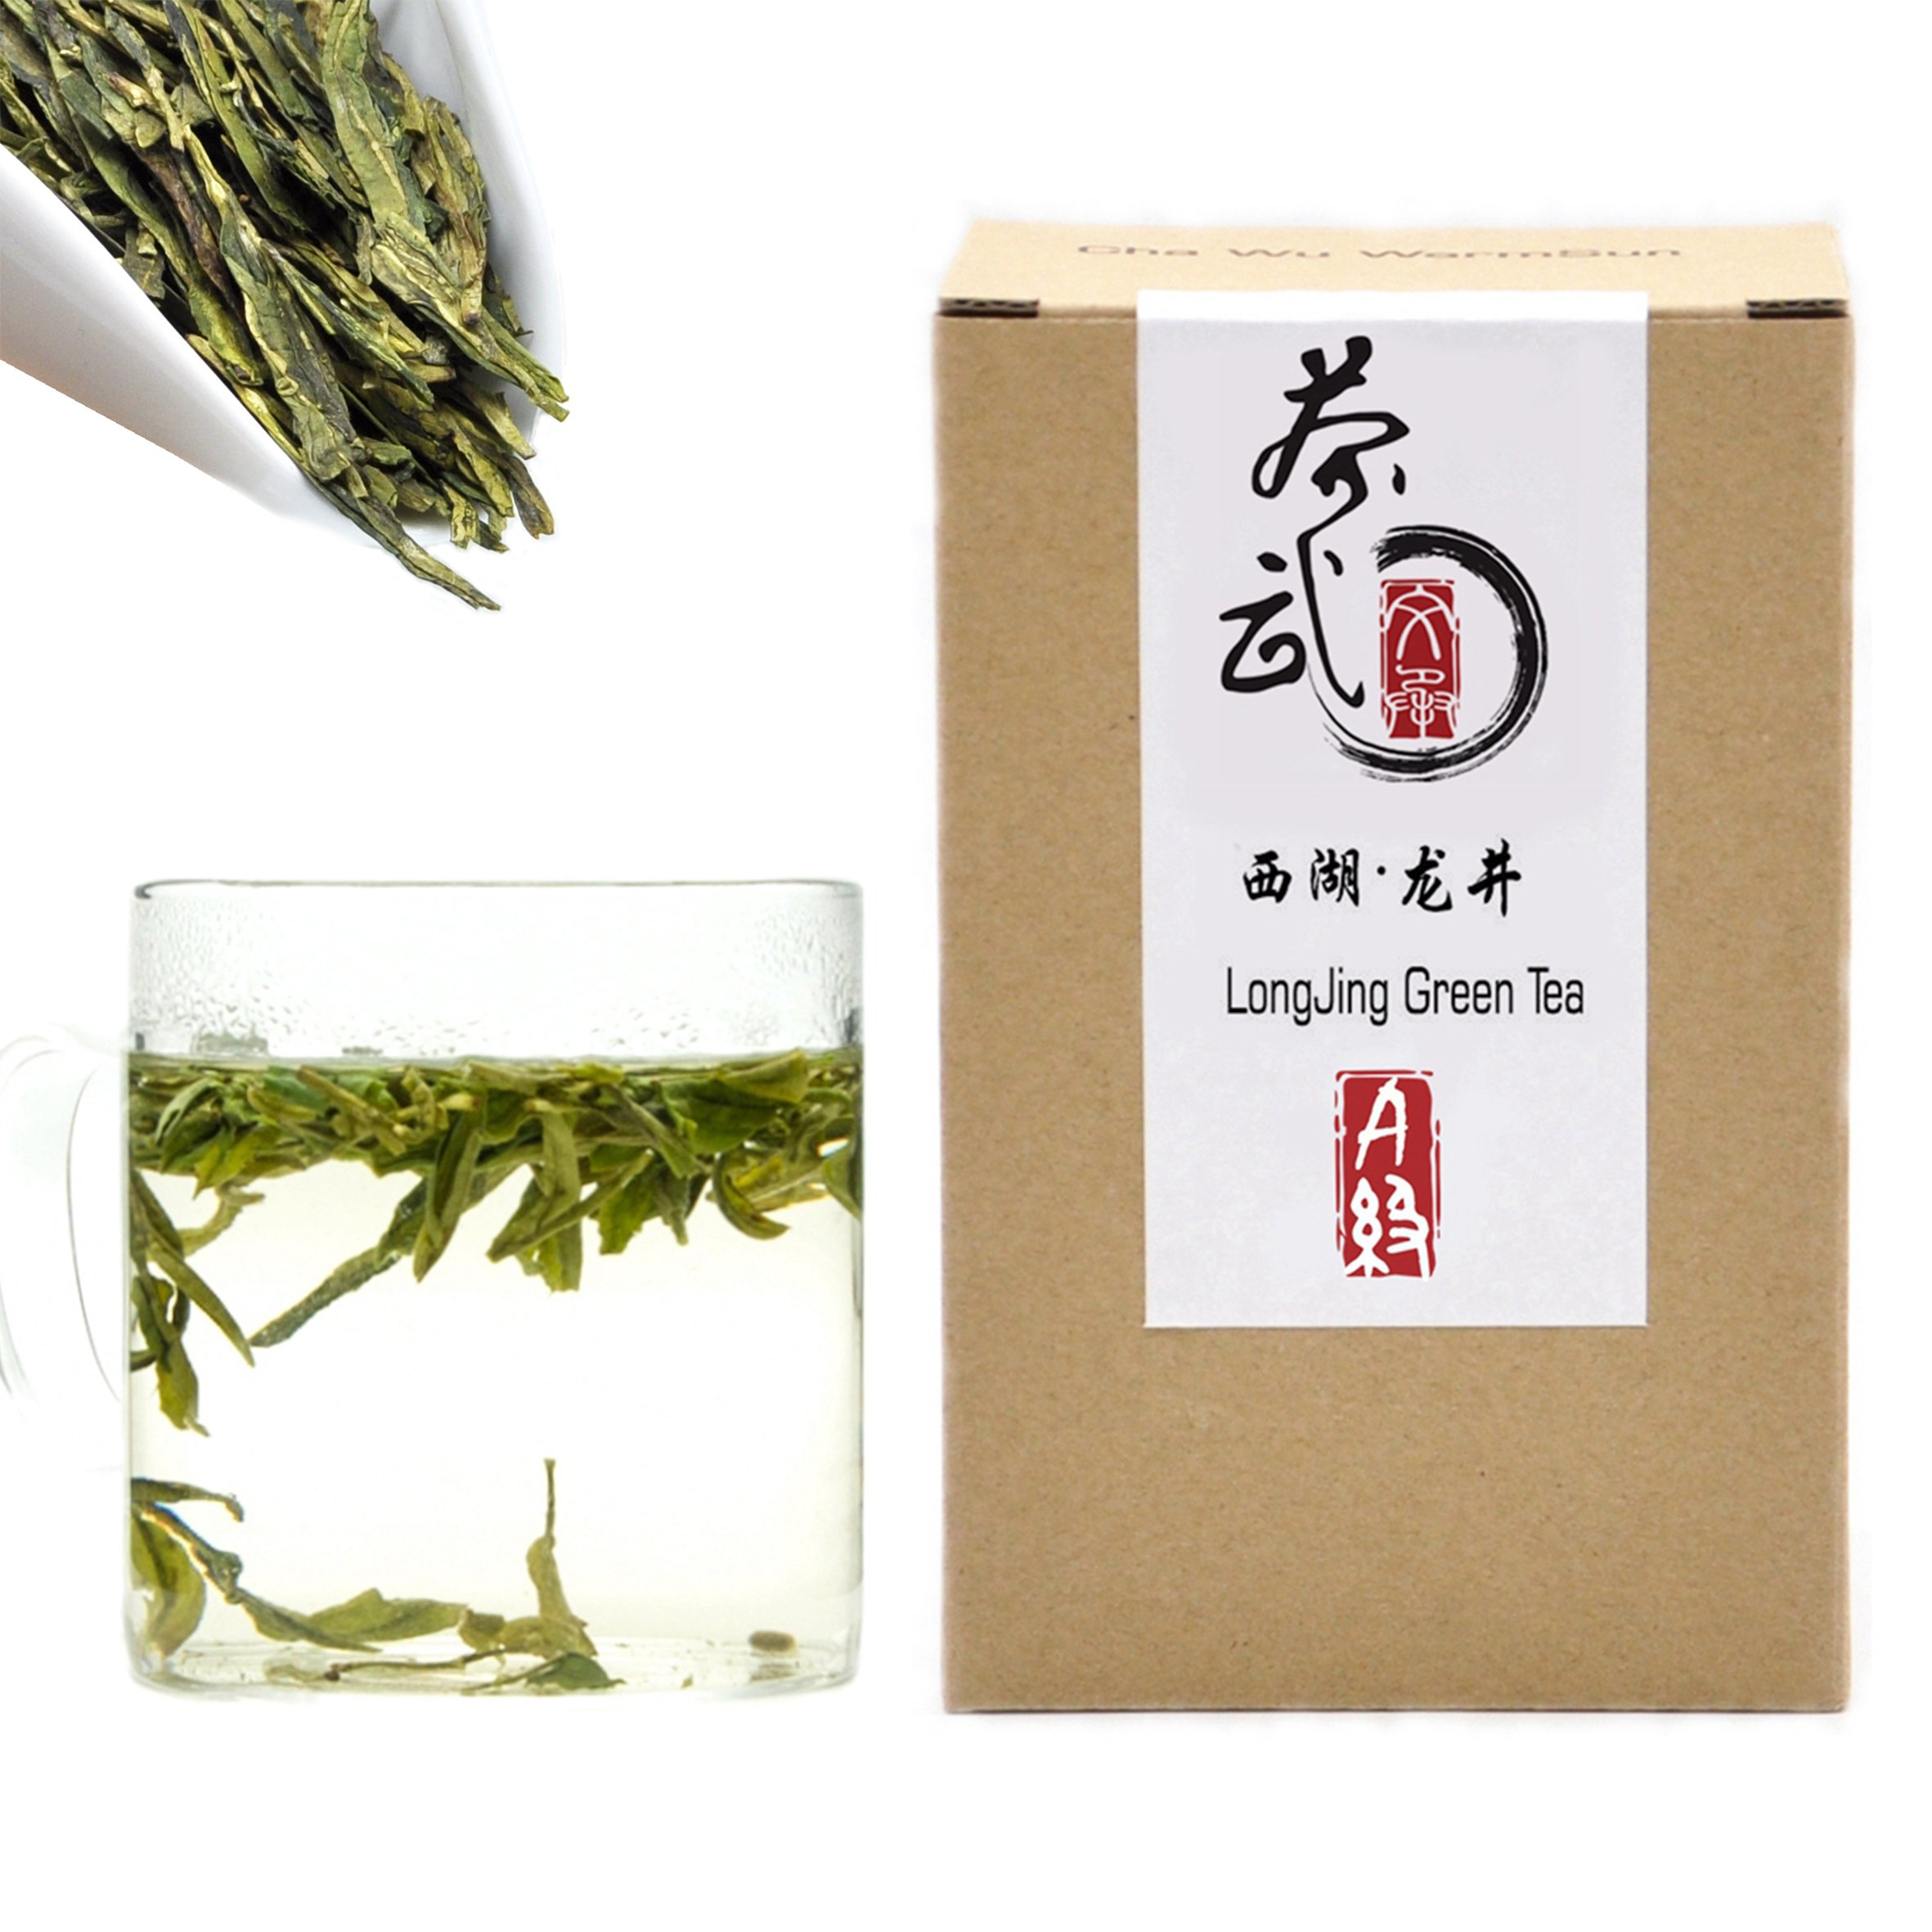 Cha Wu-[A] LongJing Green Tea,8.8oz/250g,Chinese Green Tea Loose Leaf